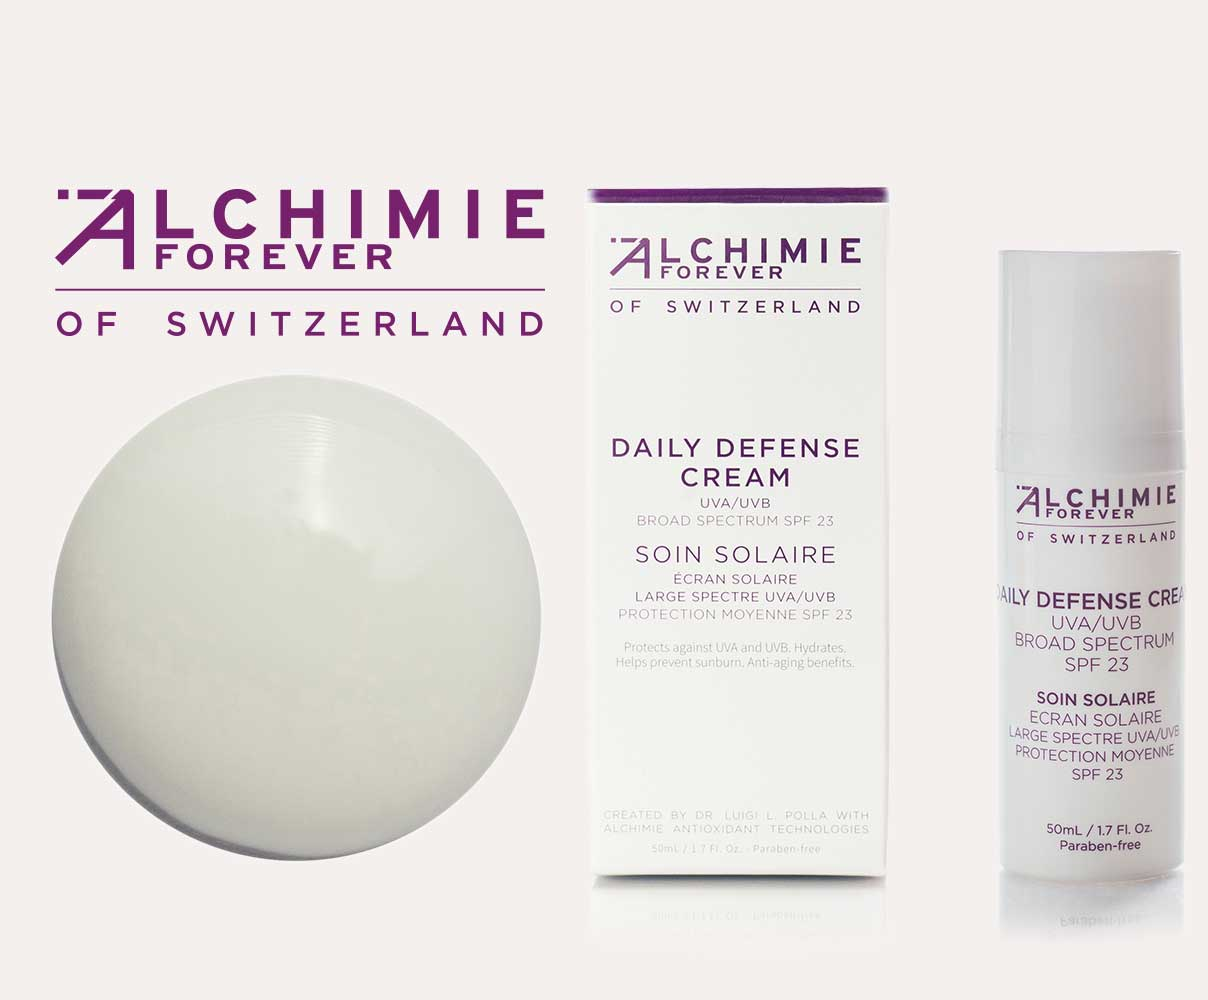 Alchimie Forever of Switzerland.